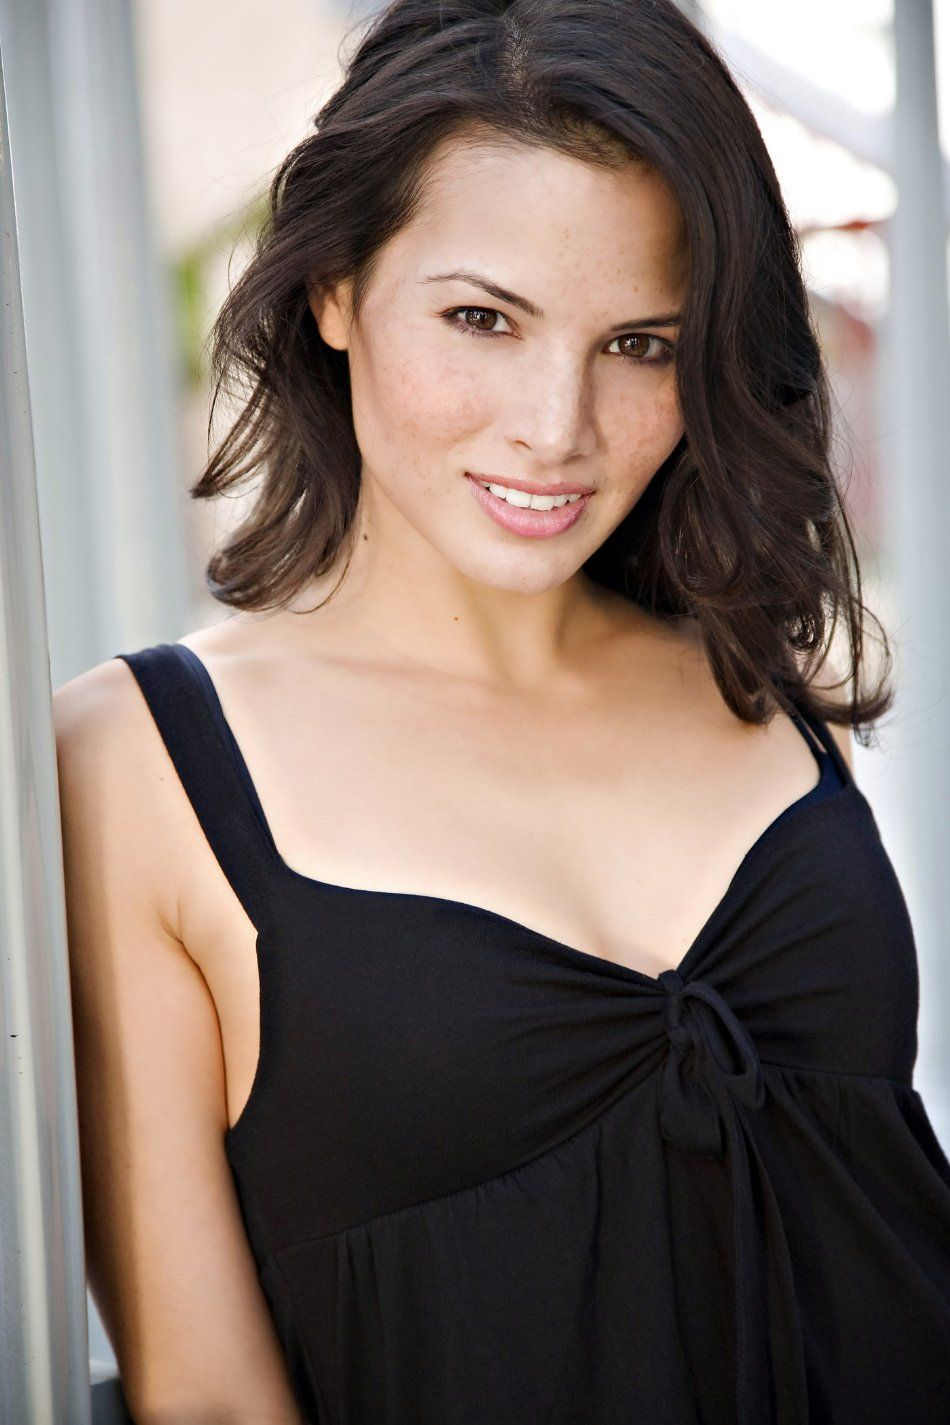 Leaked Katrina Law nudes (29 photo), Ass, Hot, Boobs, lingerie 2020